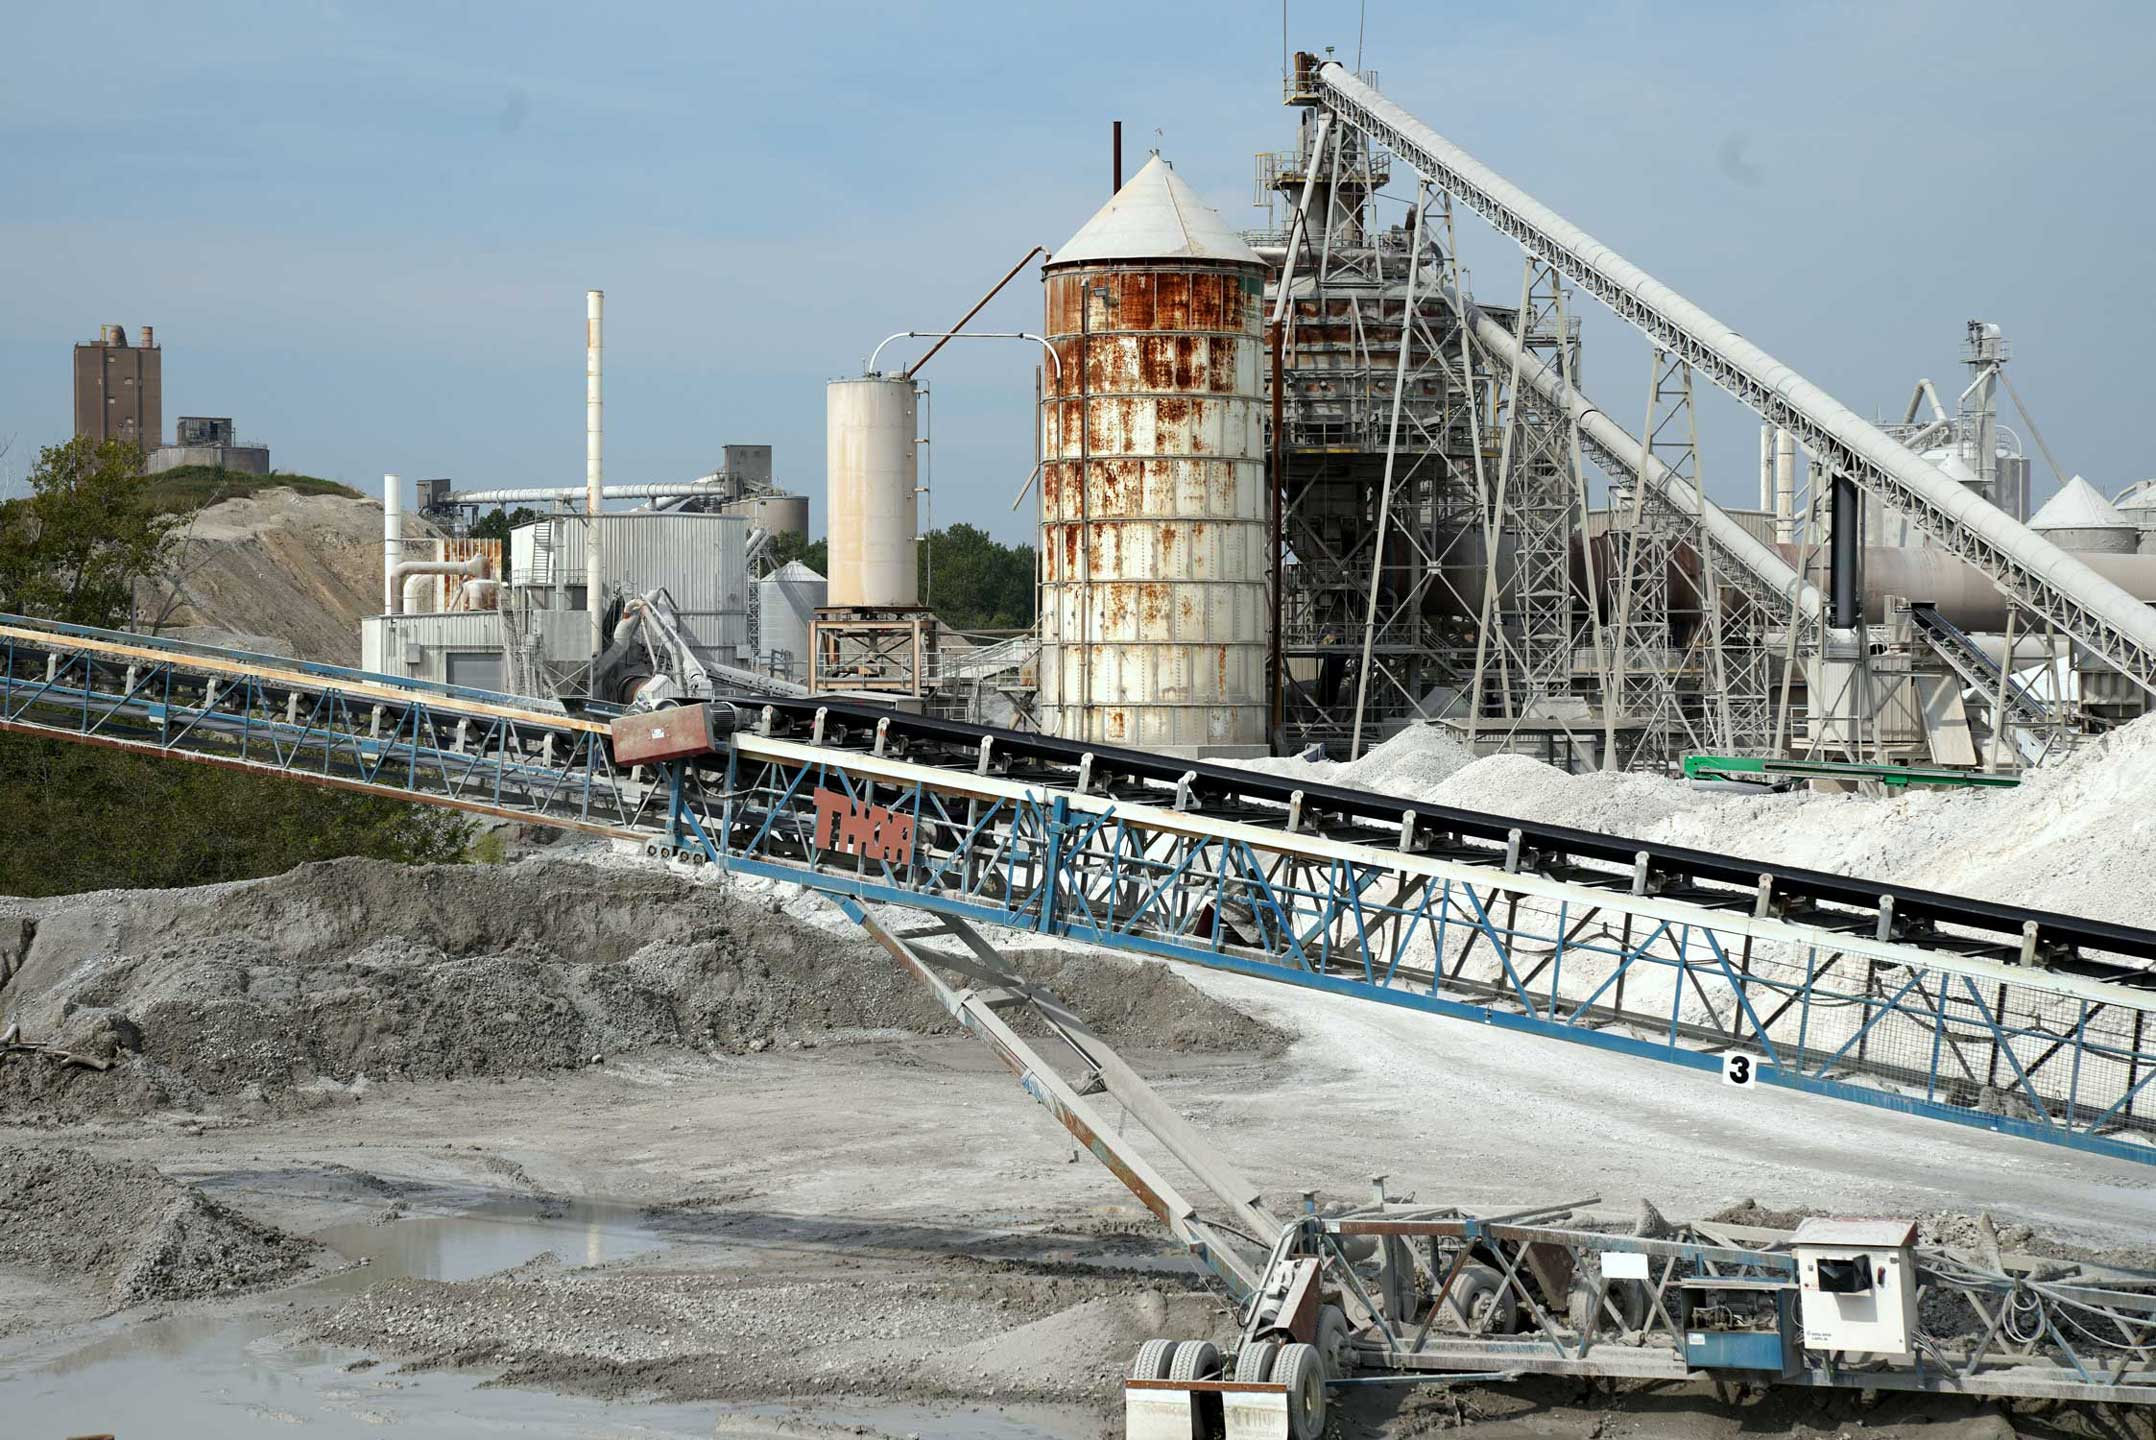 Sifter and conveyor system at Linwood Mining